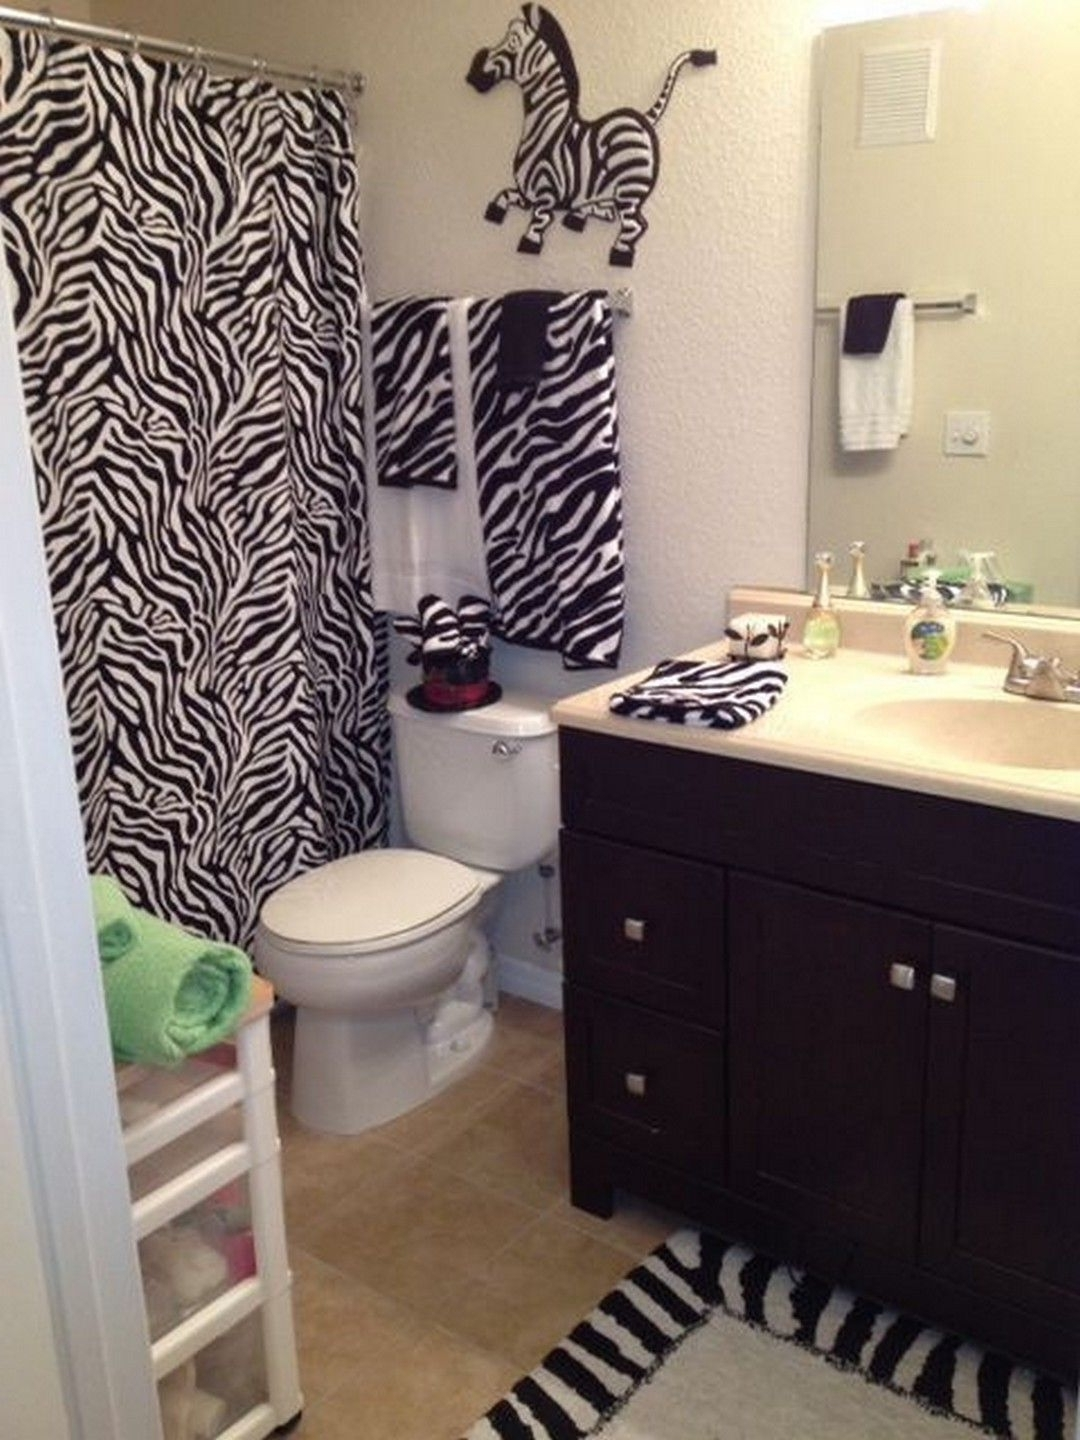 Zebra Theme Bathroom Ideas You Can Manage In Your Own Home Zebra Bathroom Decorating